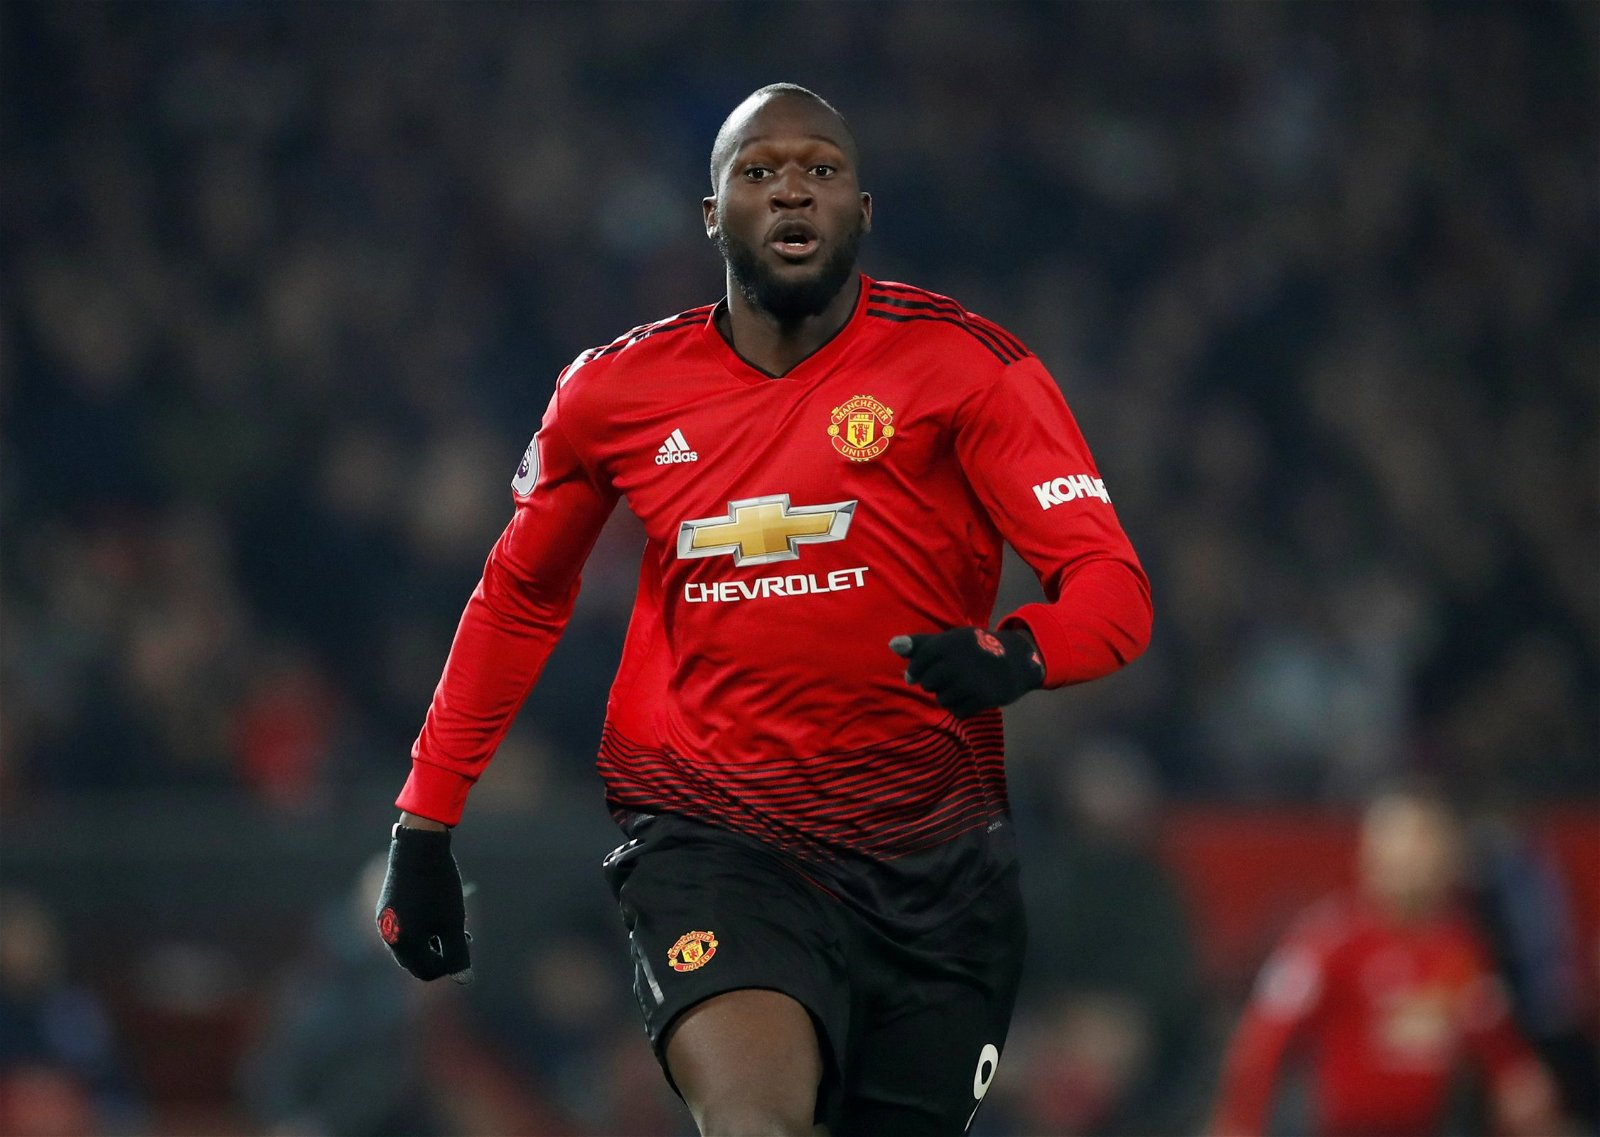 Romelu Lukaku chases the ball - New role for Jose favourite, Title charge: Potential aftermath if Man Utd secure star's future